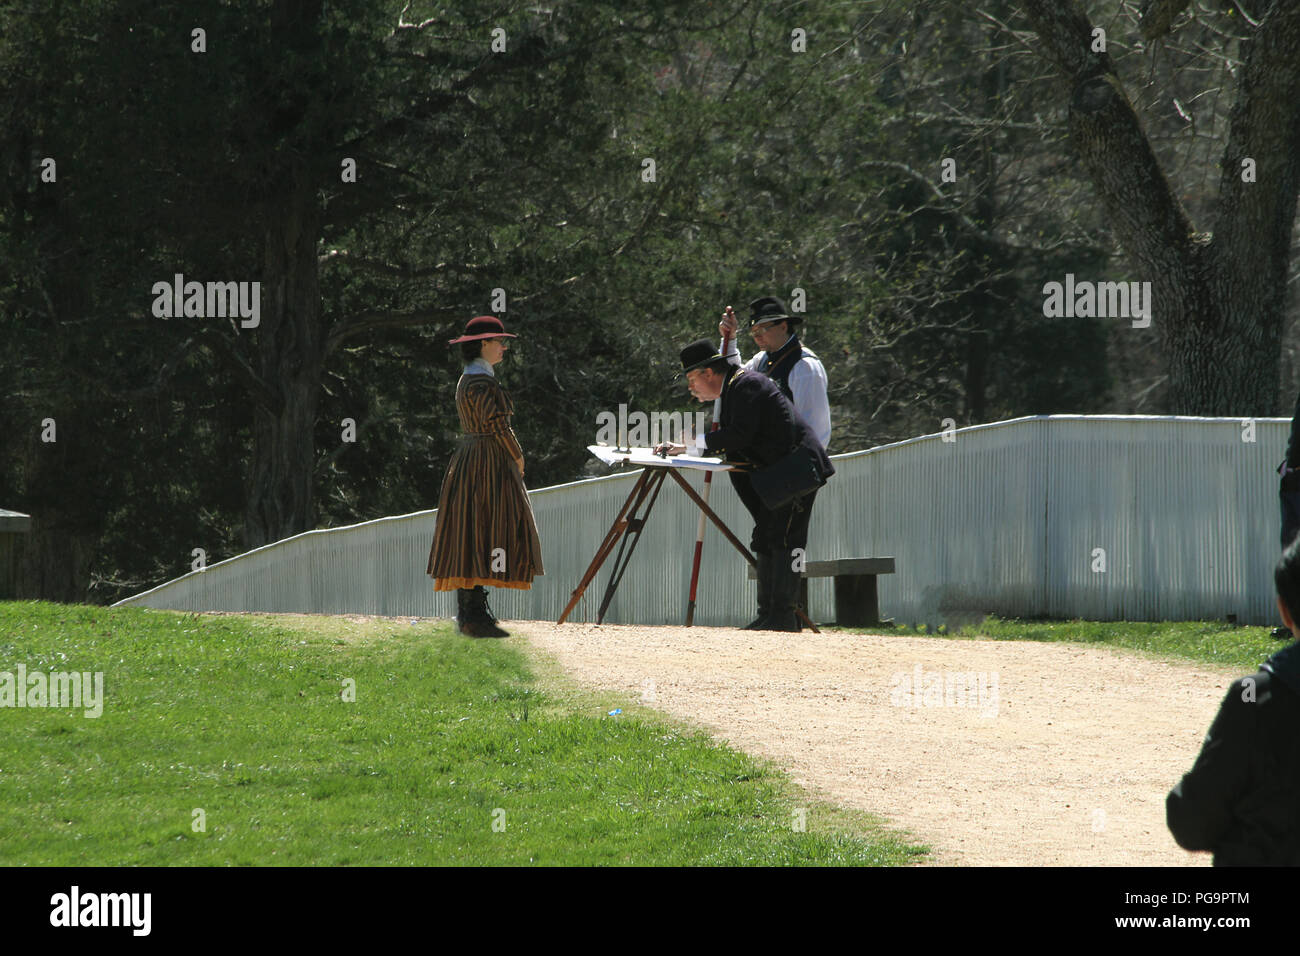 Cartographers surveying the land during the Civil War. Historical reenactment at Appomattox Court House, Virginia. - Stock Image